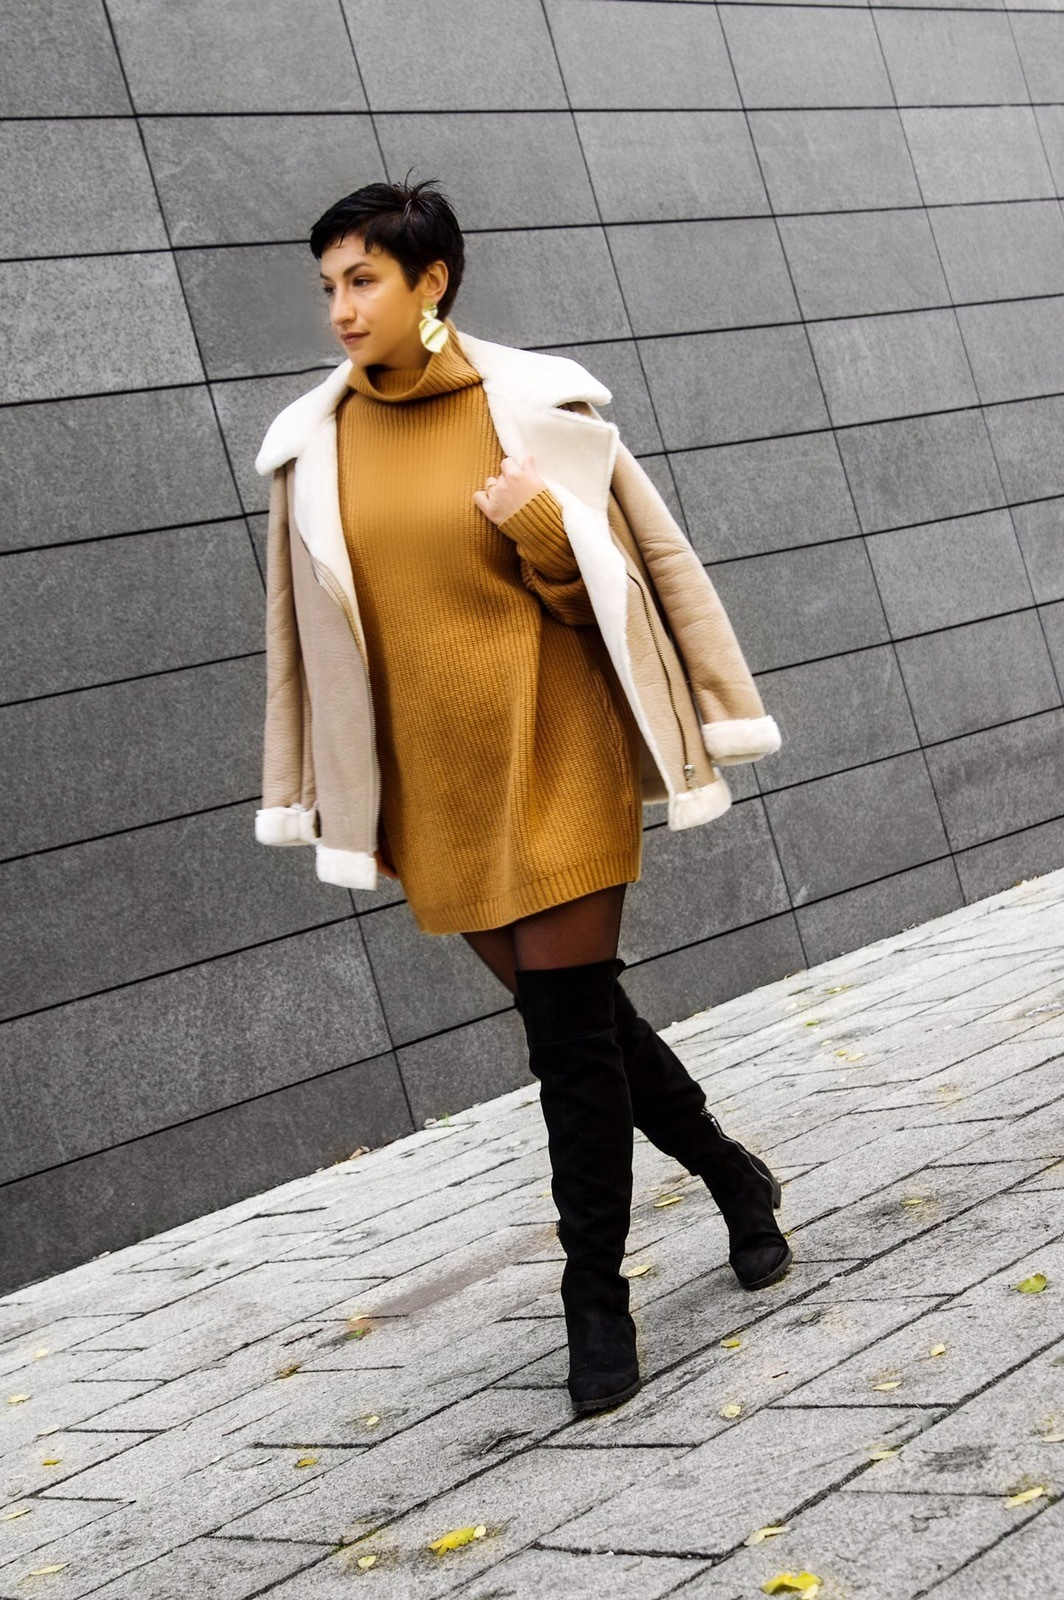 aviator faux fur jacket, knitted dress, over the knee boots, fall oufit winter outfit